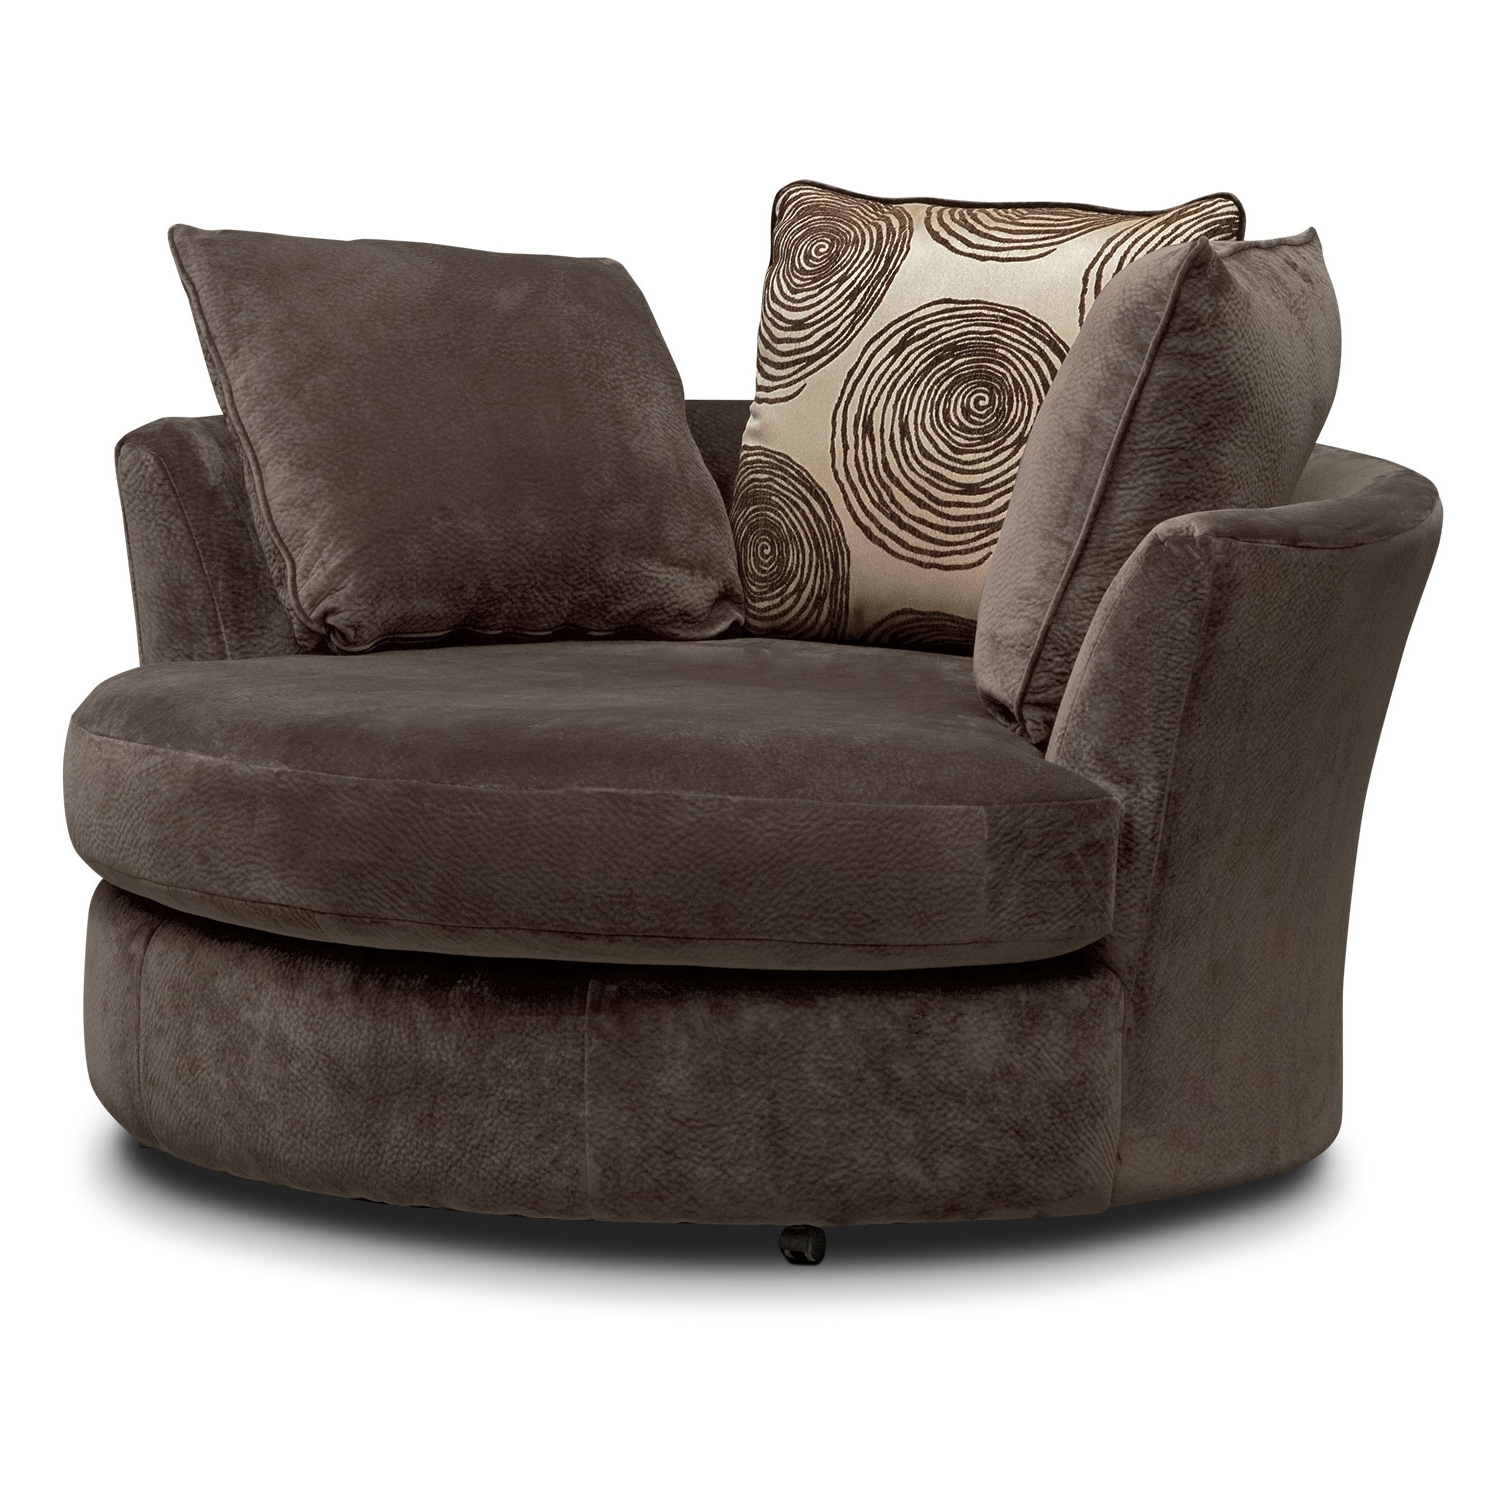 Fashionable Sofas With Swivel Chair Inside Cordelle Sofa And Swivel Chair Set – Chocolate (View 1 of 15)